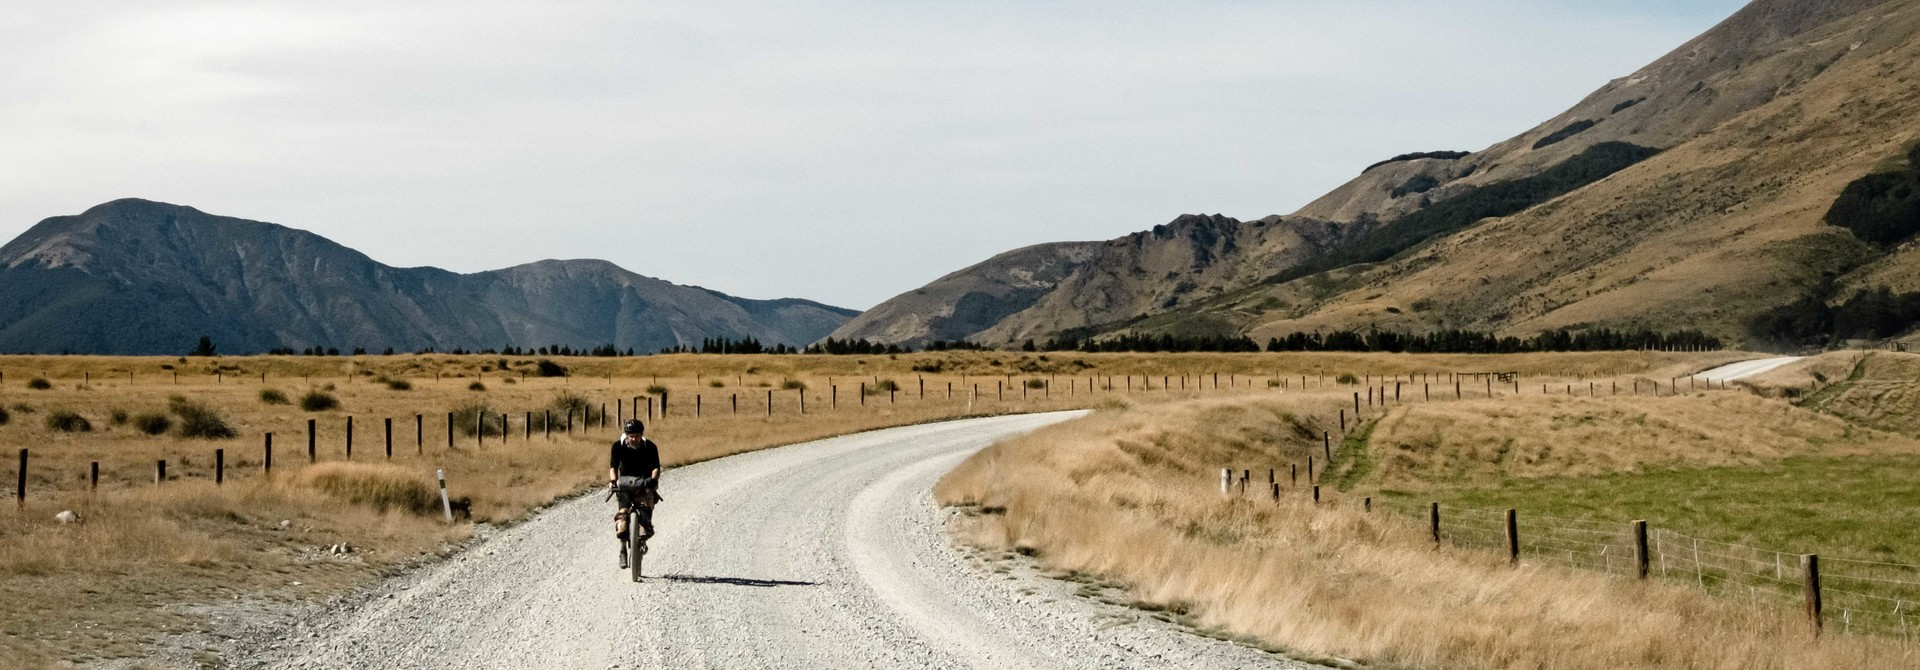 Bikepacking Queenstown: Around The Mountains